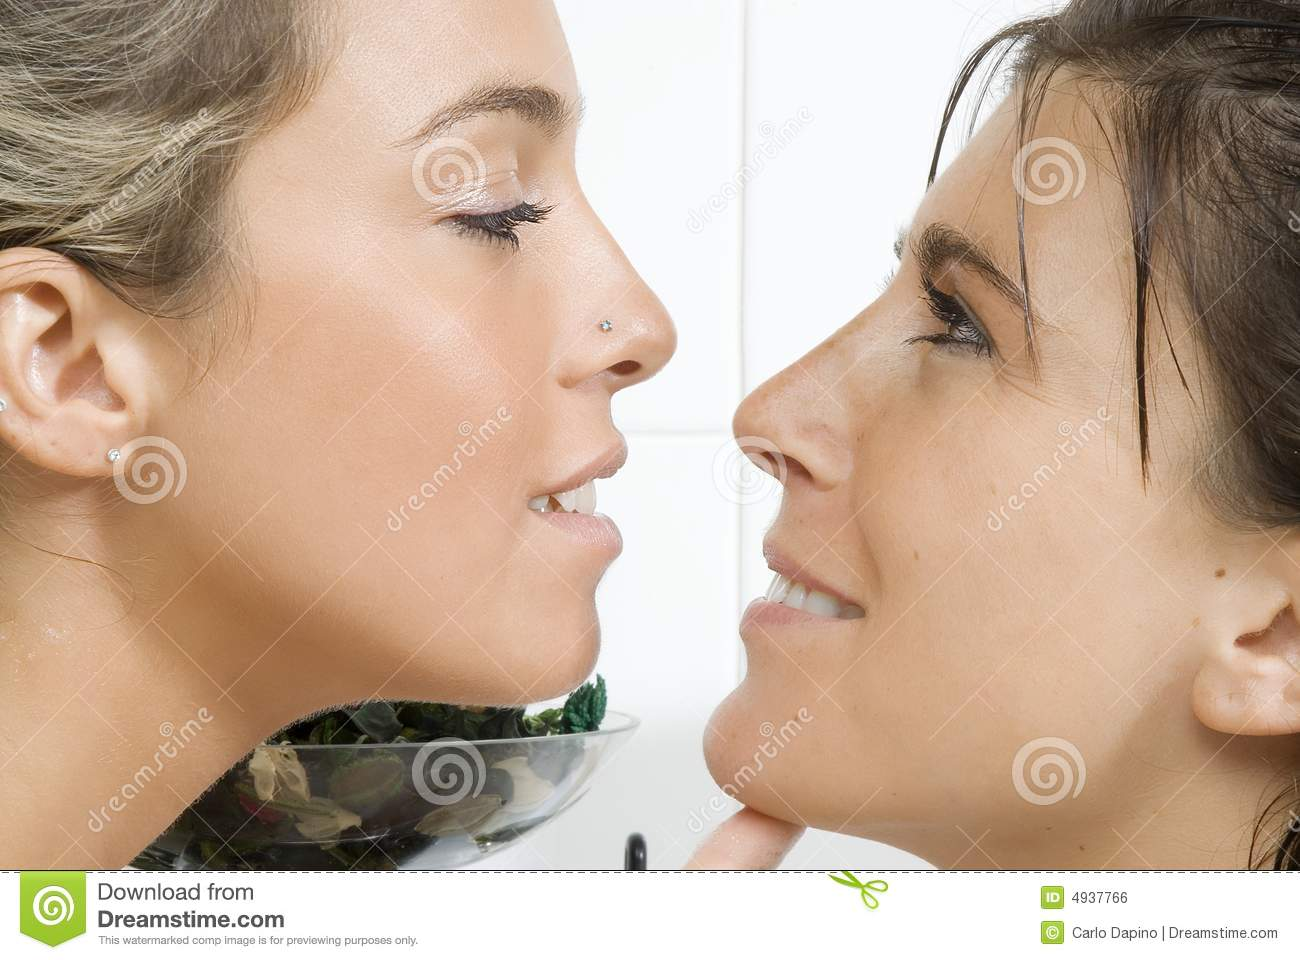 online dating face to face Traditional dating encapsulates the proven method of meeting a potential life partner face-to-face and building a bond through continual interactions you enjoy getting to know a potential.